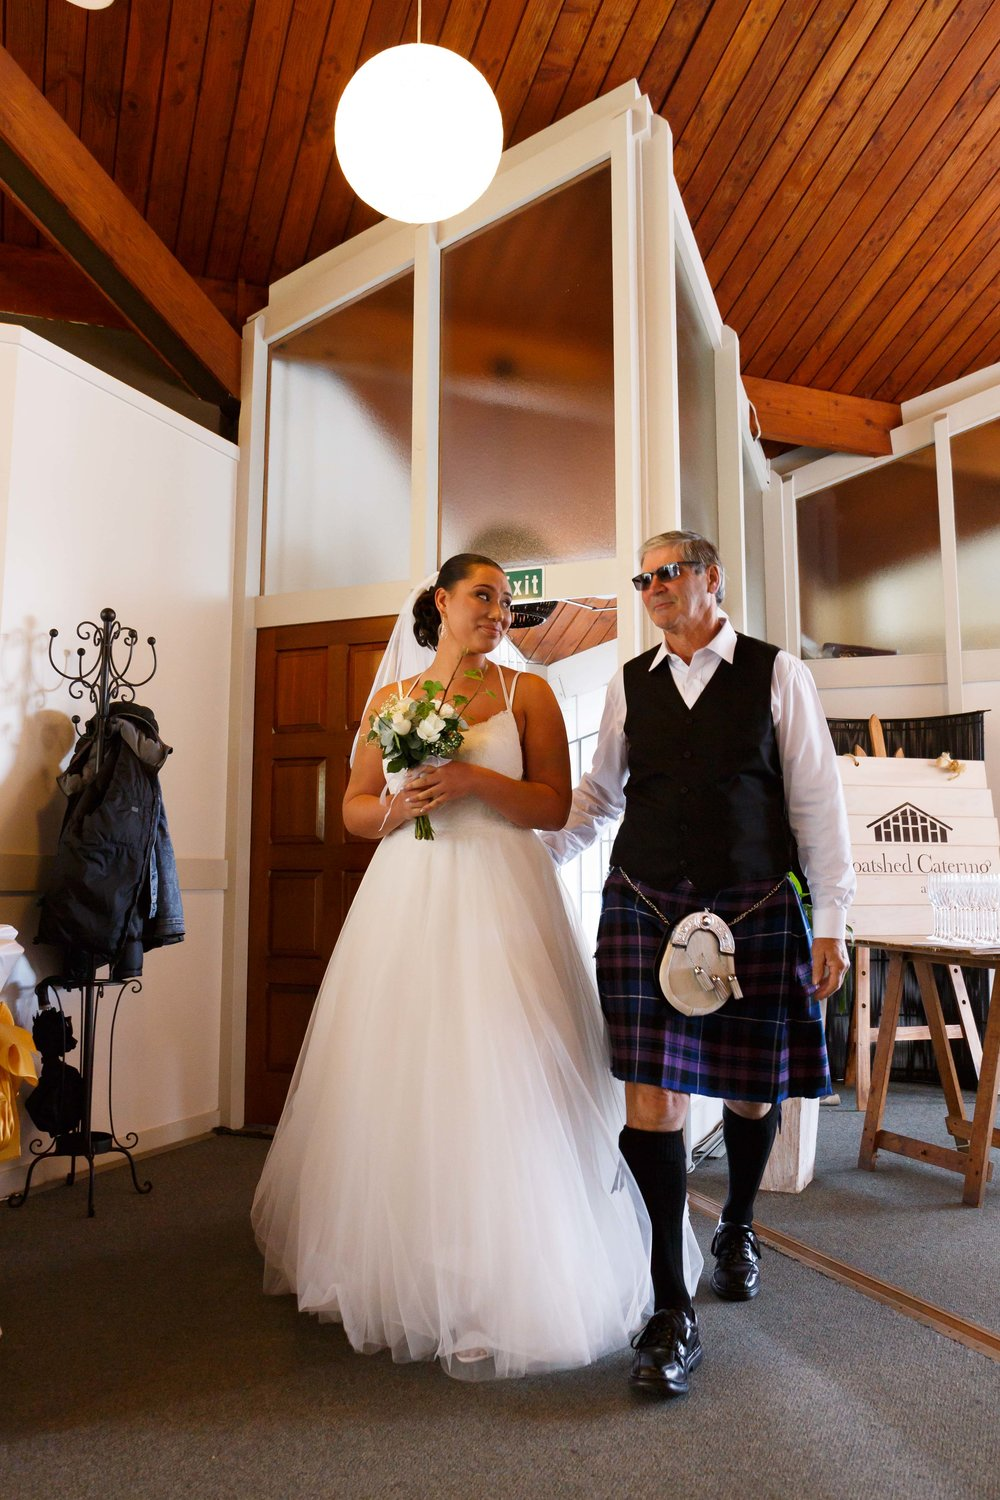 Highight-wedding-photography-the-chalet-palmerston-north-new-zealand-25.jpg